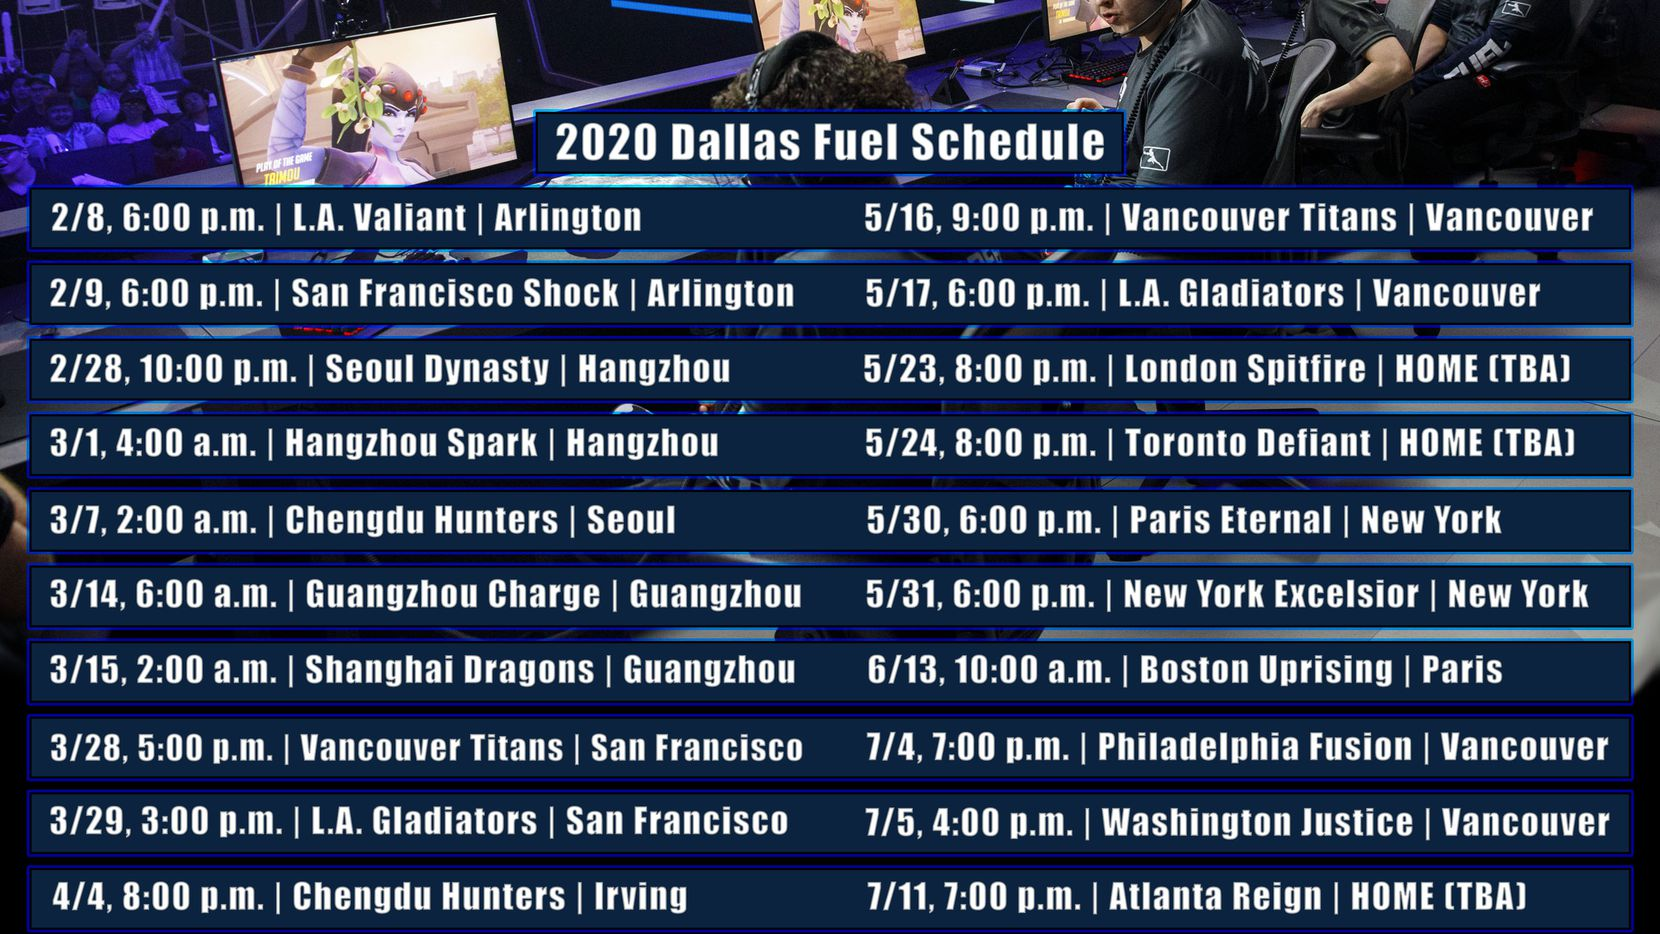 Titans Schedule 2020.We Re Going To Have A Lot Of Eyes On Us How The Dallas